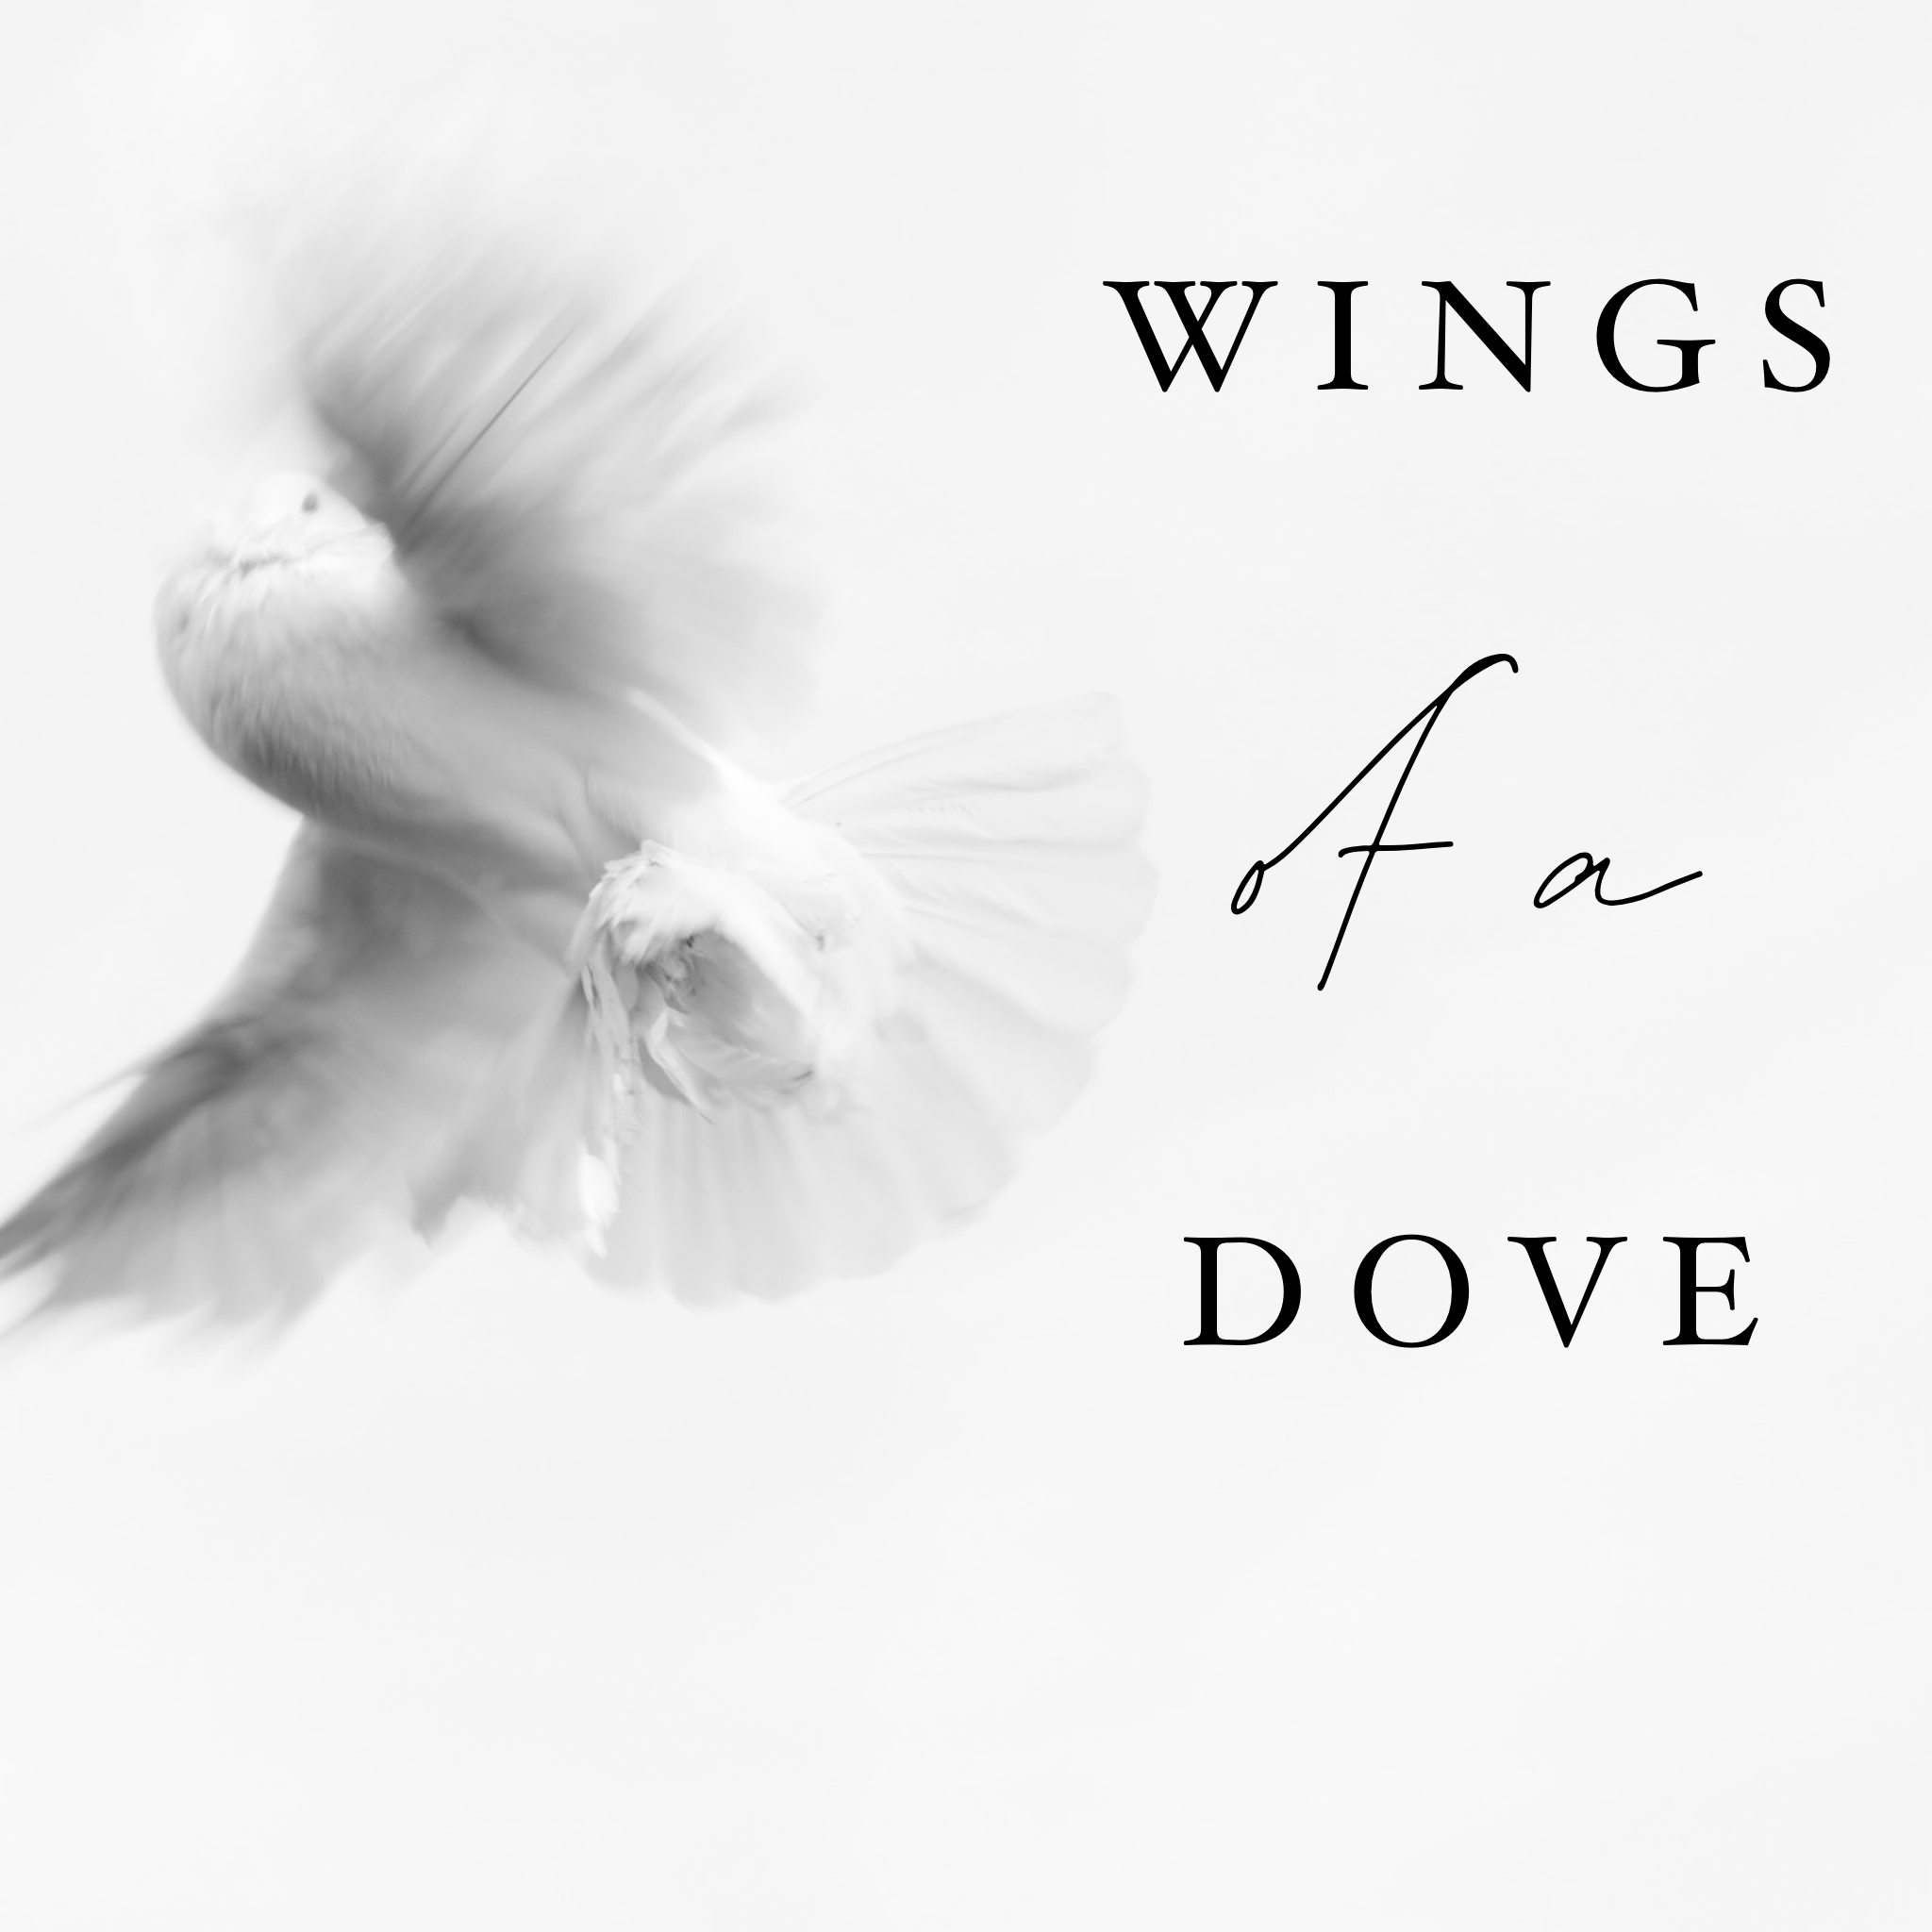 Wings of a Dove - 2/11/20